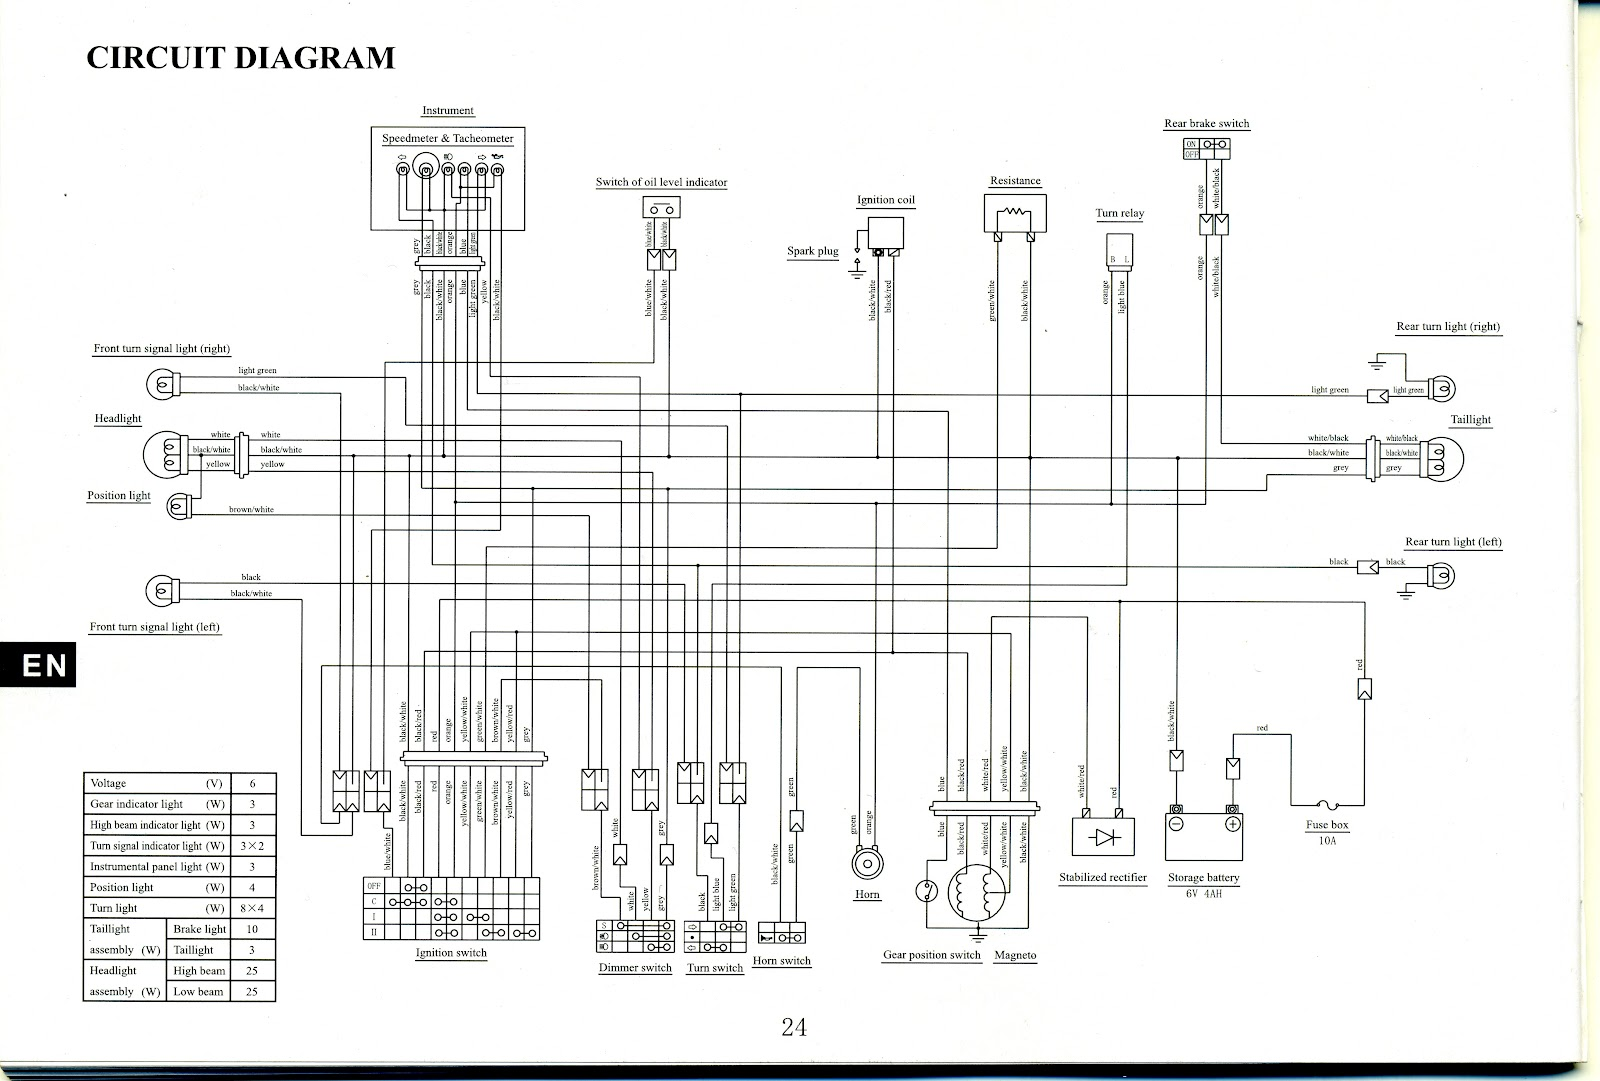 suzuki ax 100 wiring diagram suzuki wiring diagrams suzuki ax100 wiring diagram suzuki electrical wiring diagrams